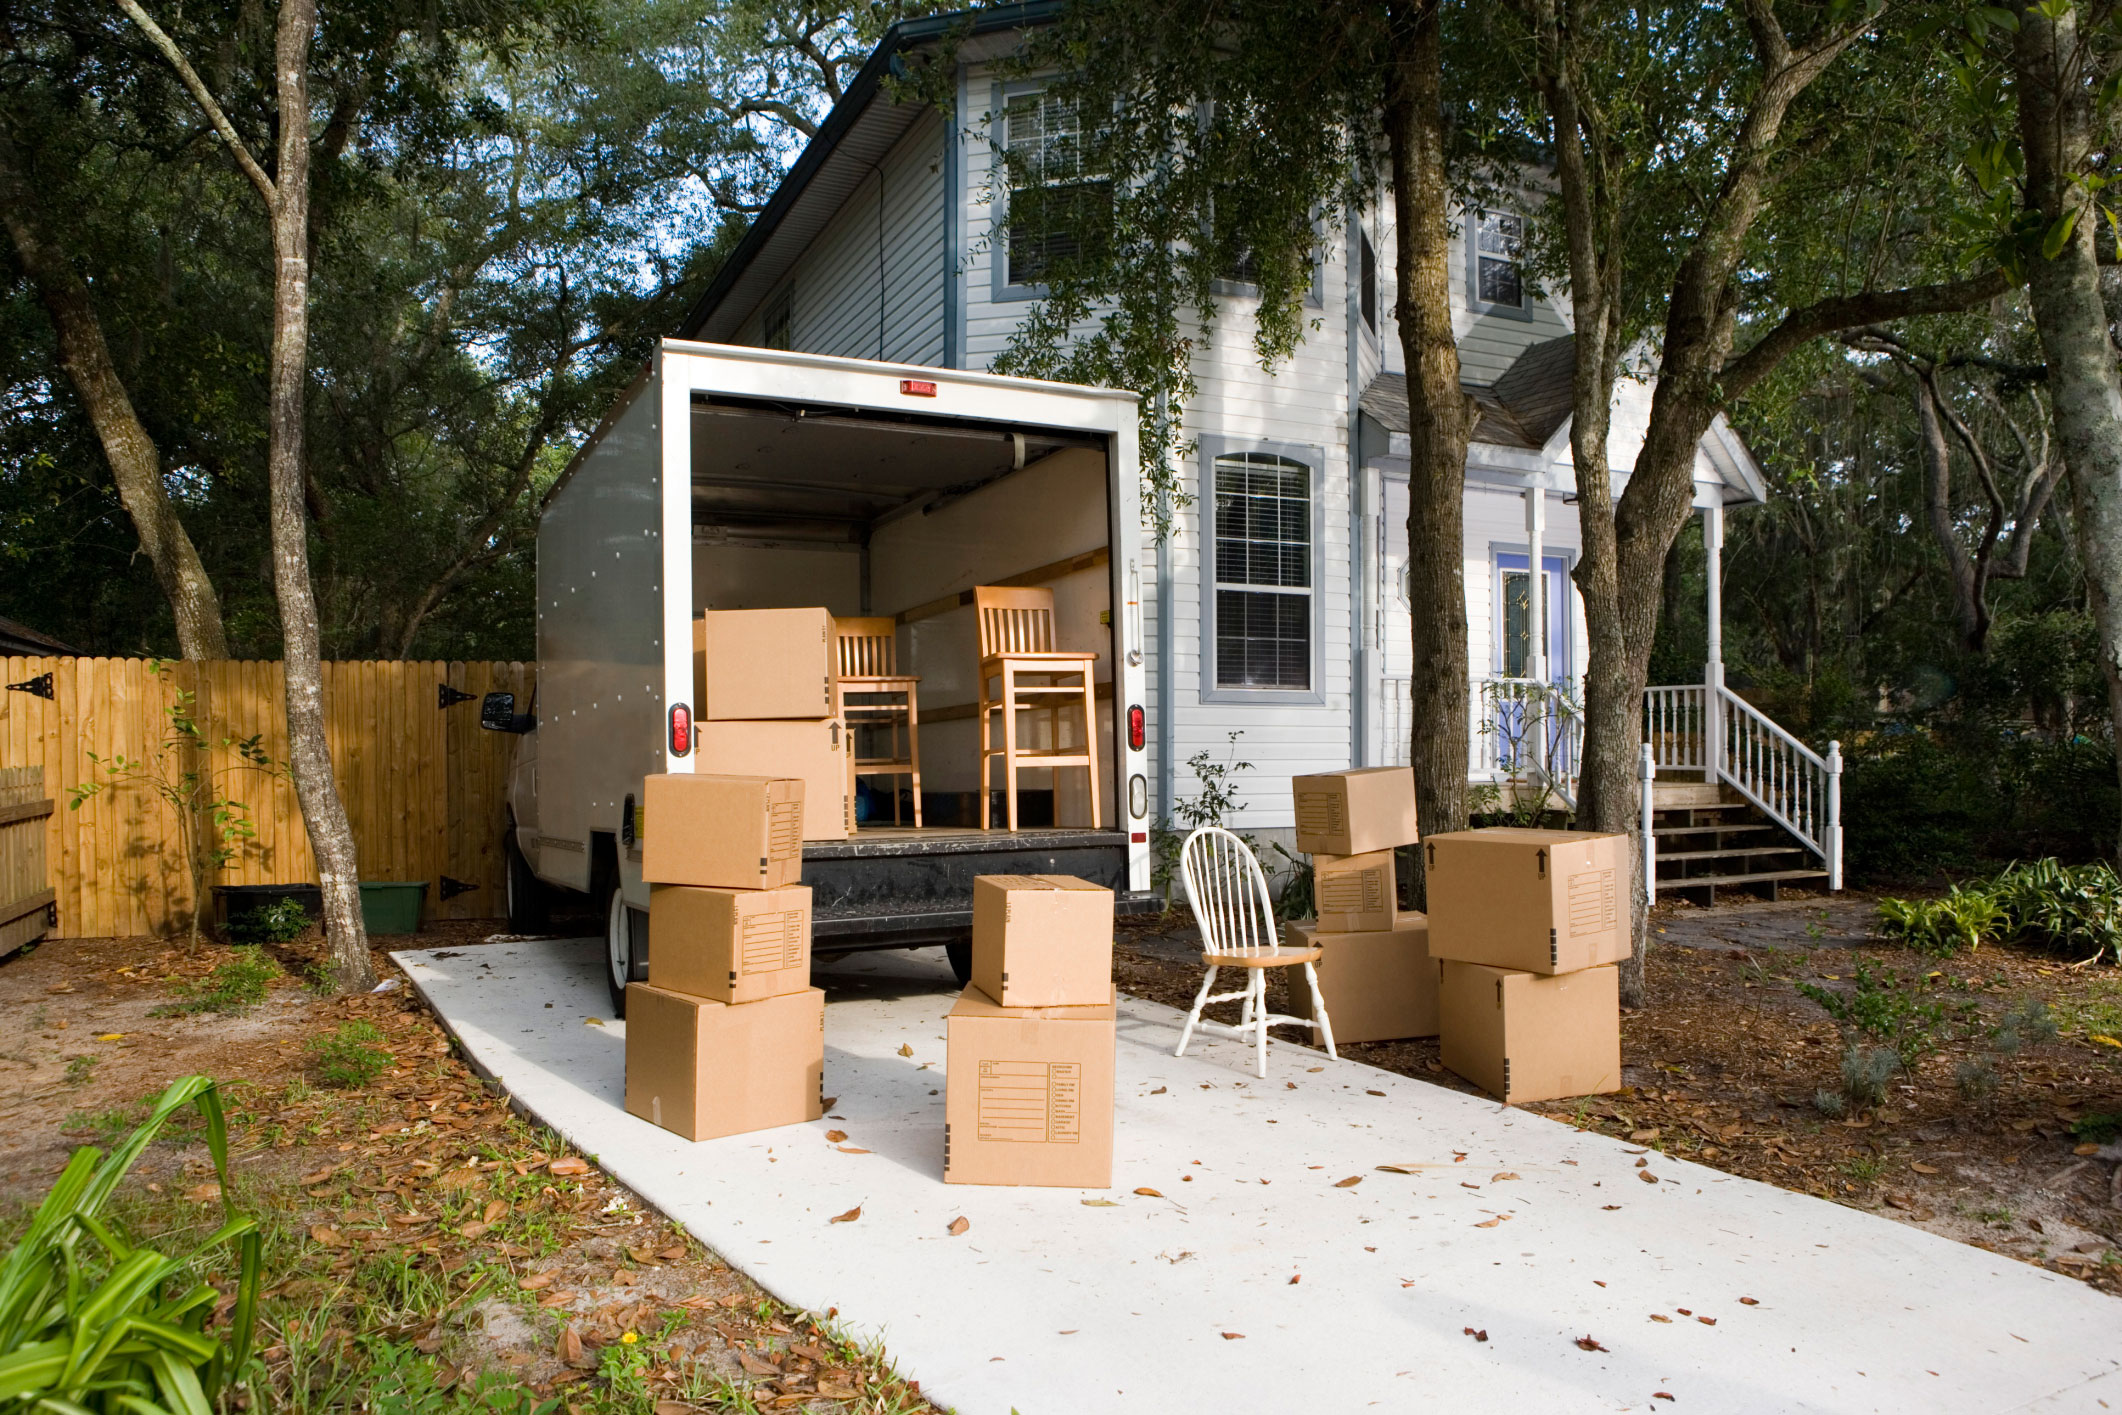 packing-services-utica-ny